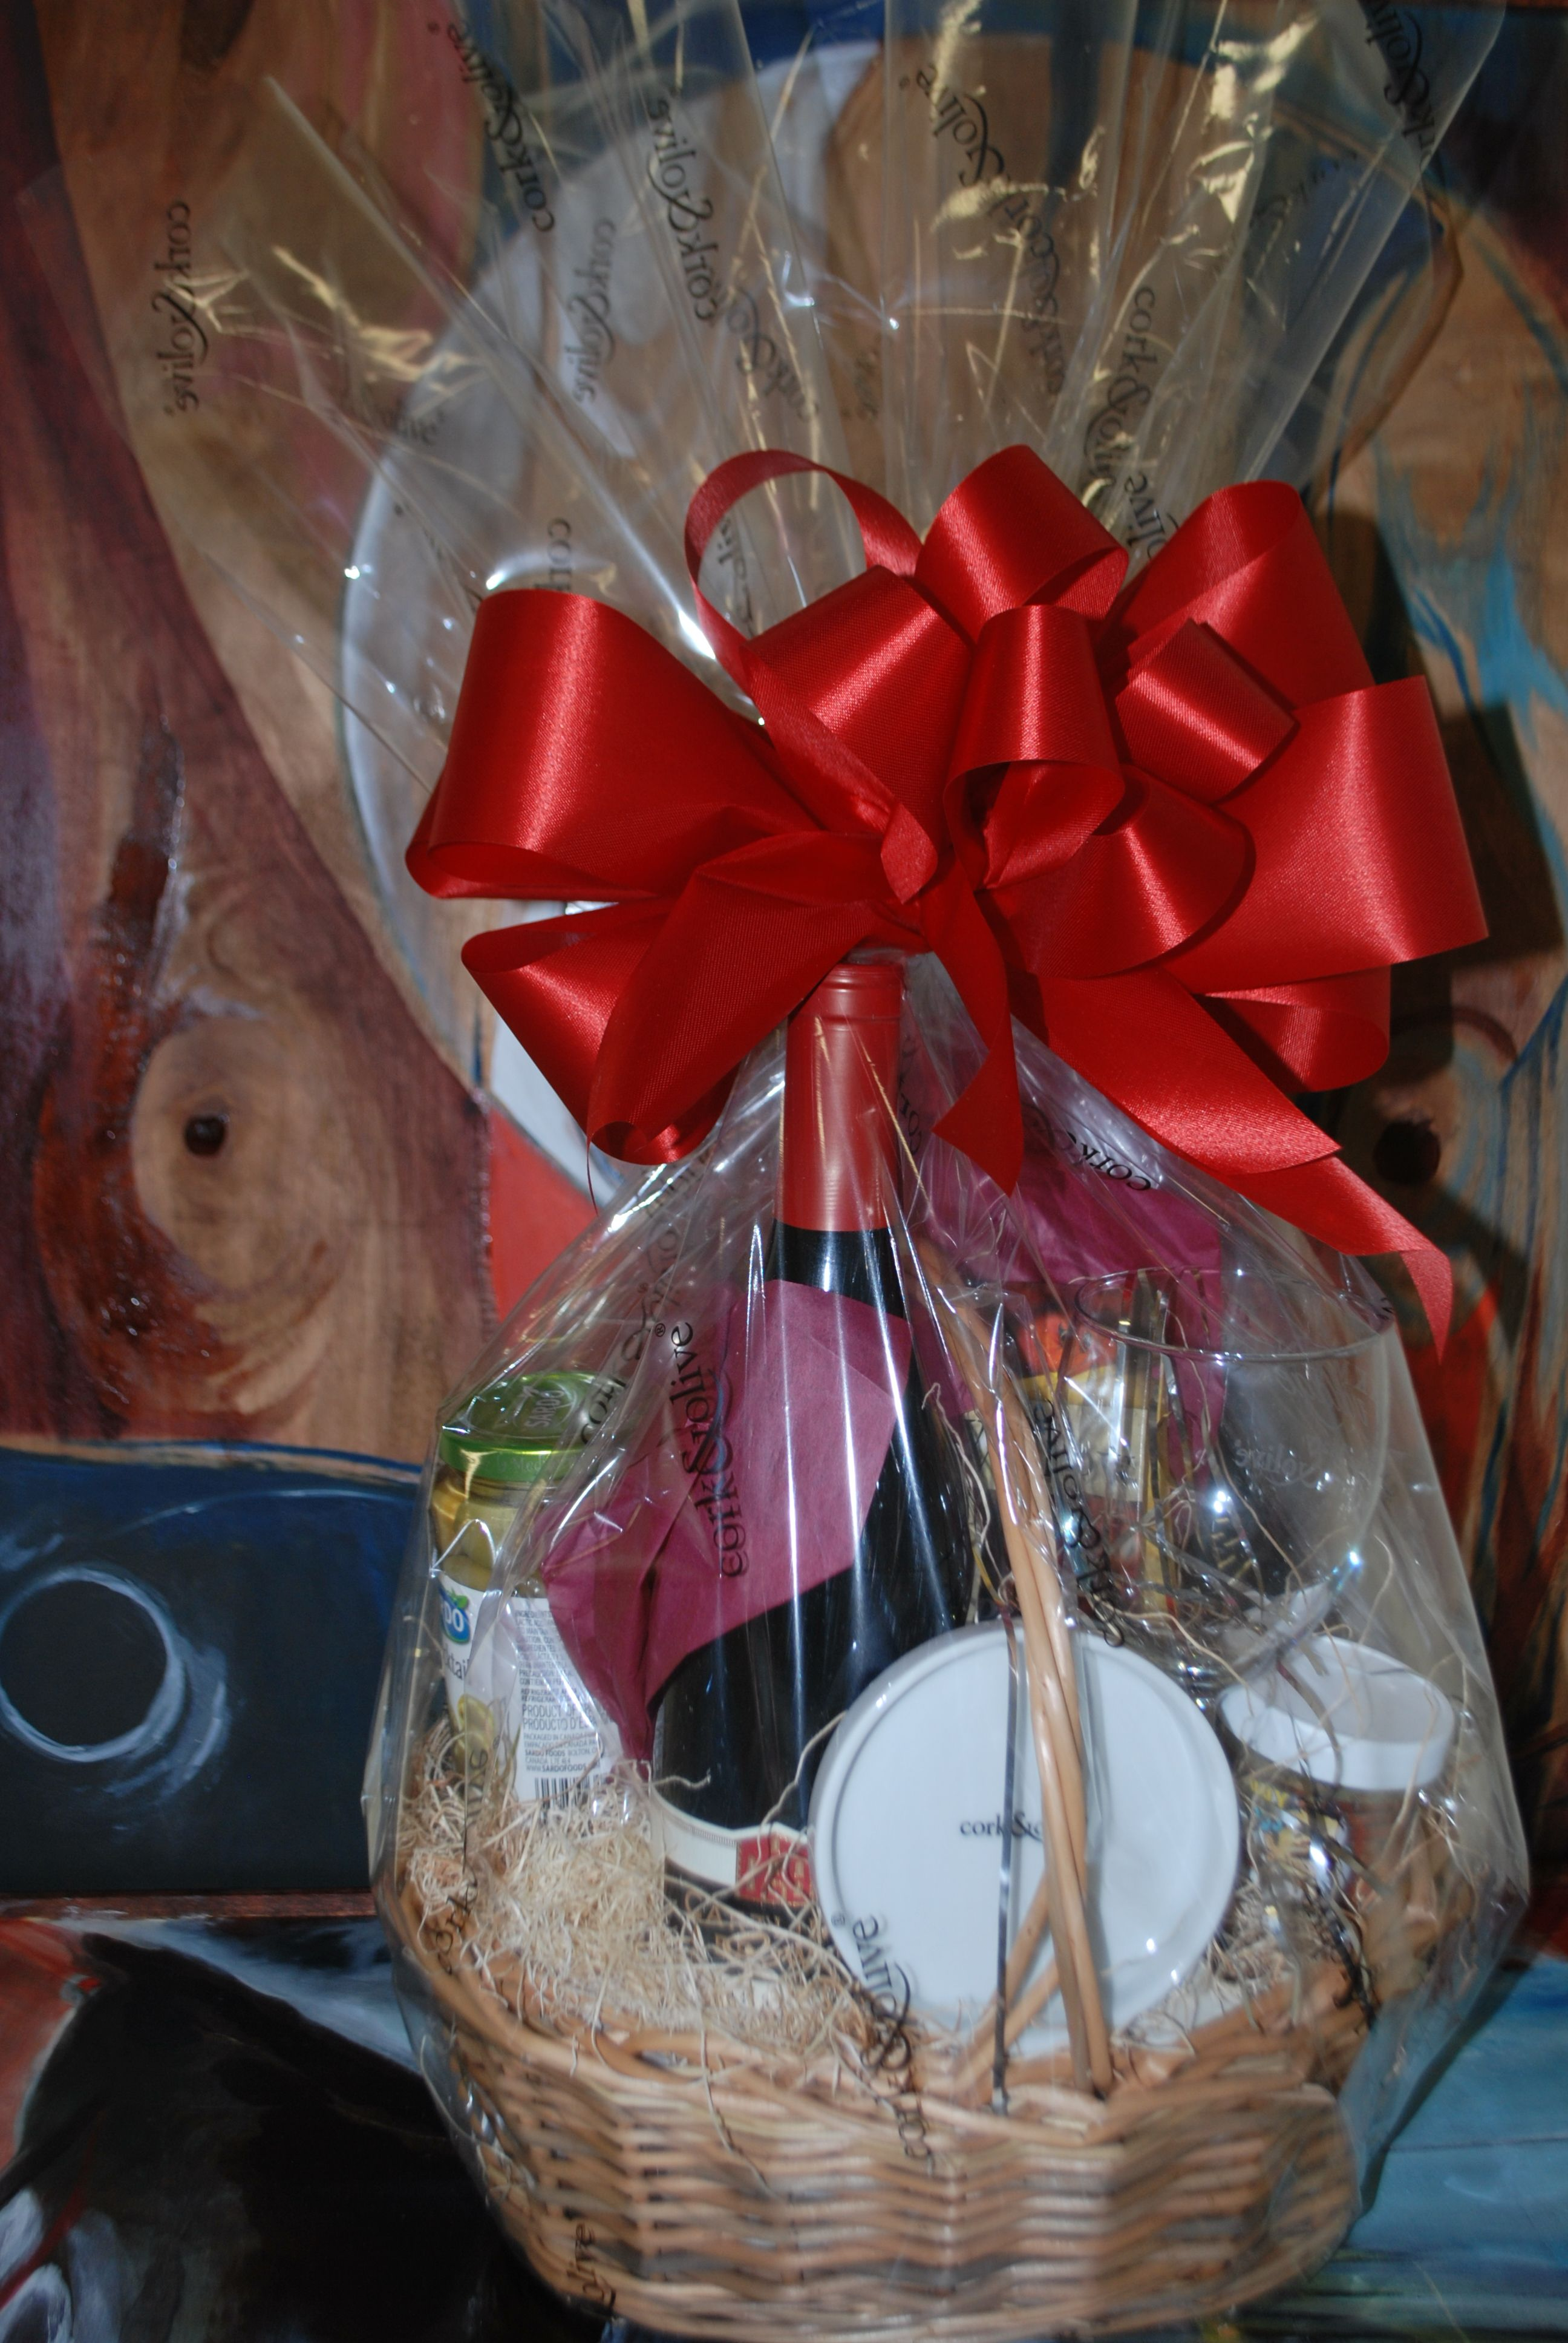 Mother S Day Father S Day Birthday Remember You Can Custom Make That Perfect Gift Wine Baskets Gift Wrapping Thank You Gifts